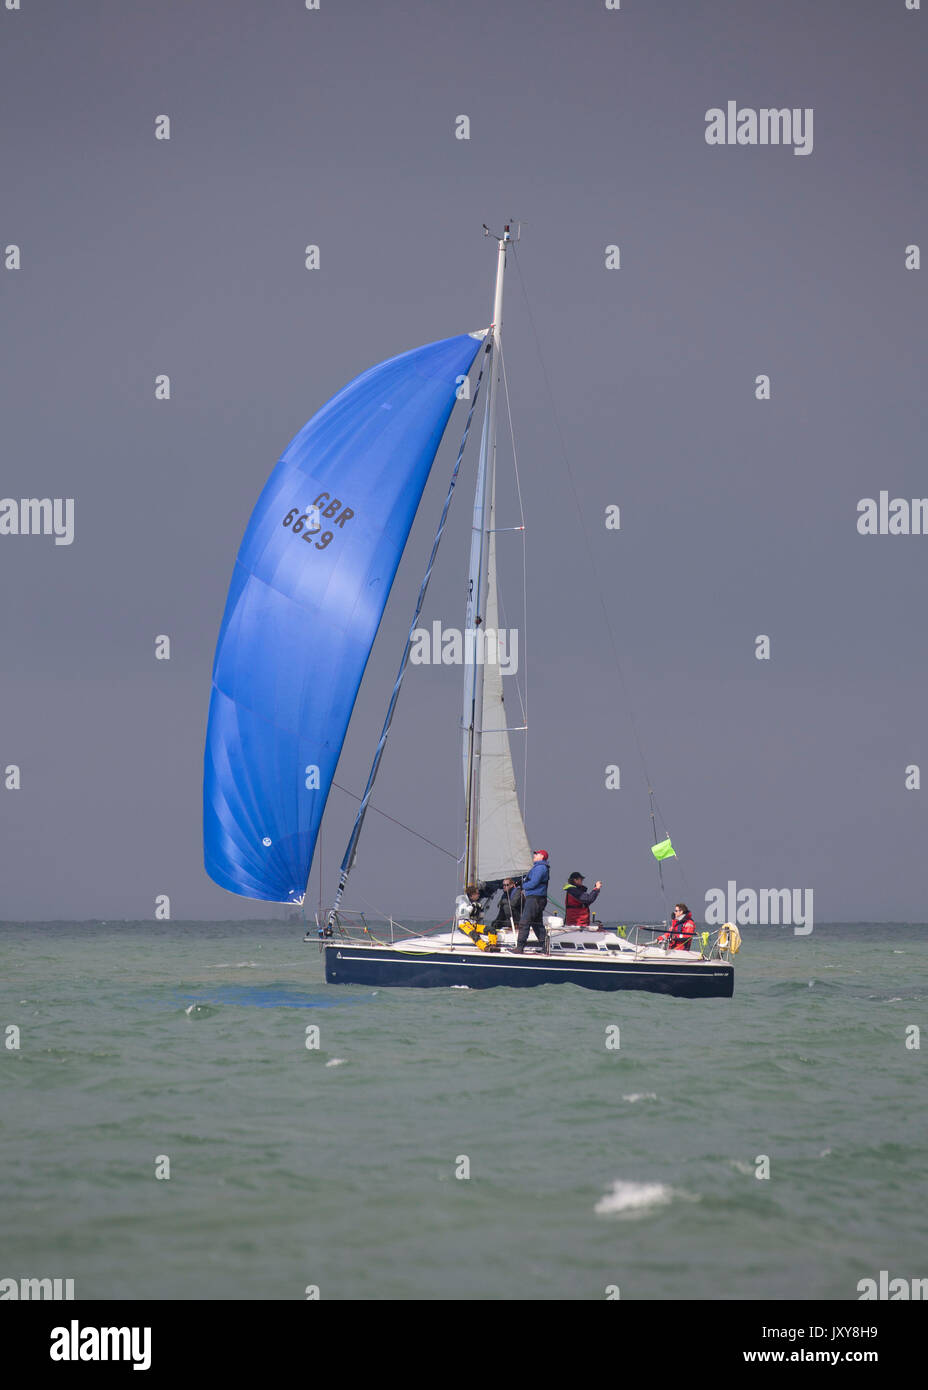 Swan 38 GBR2048R Acco under spinnaker in stormy skies during the 2017 Round the Island Race - Stock Image